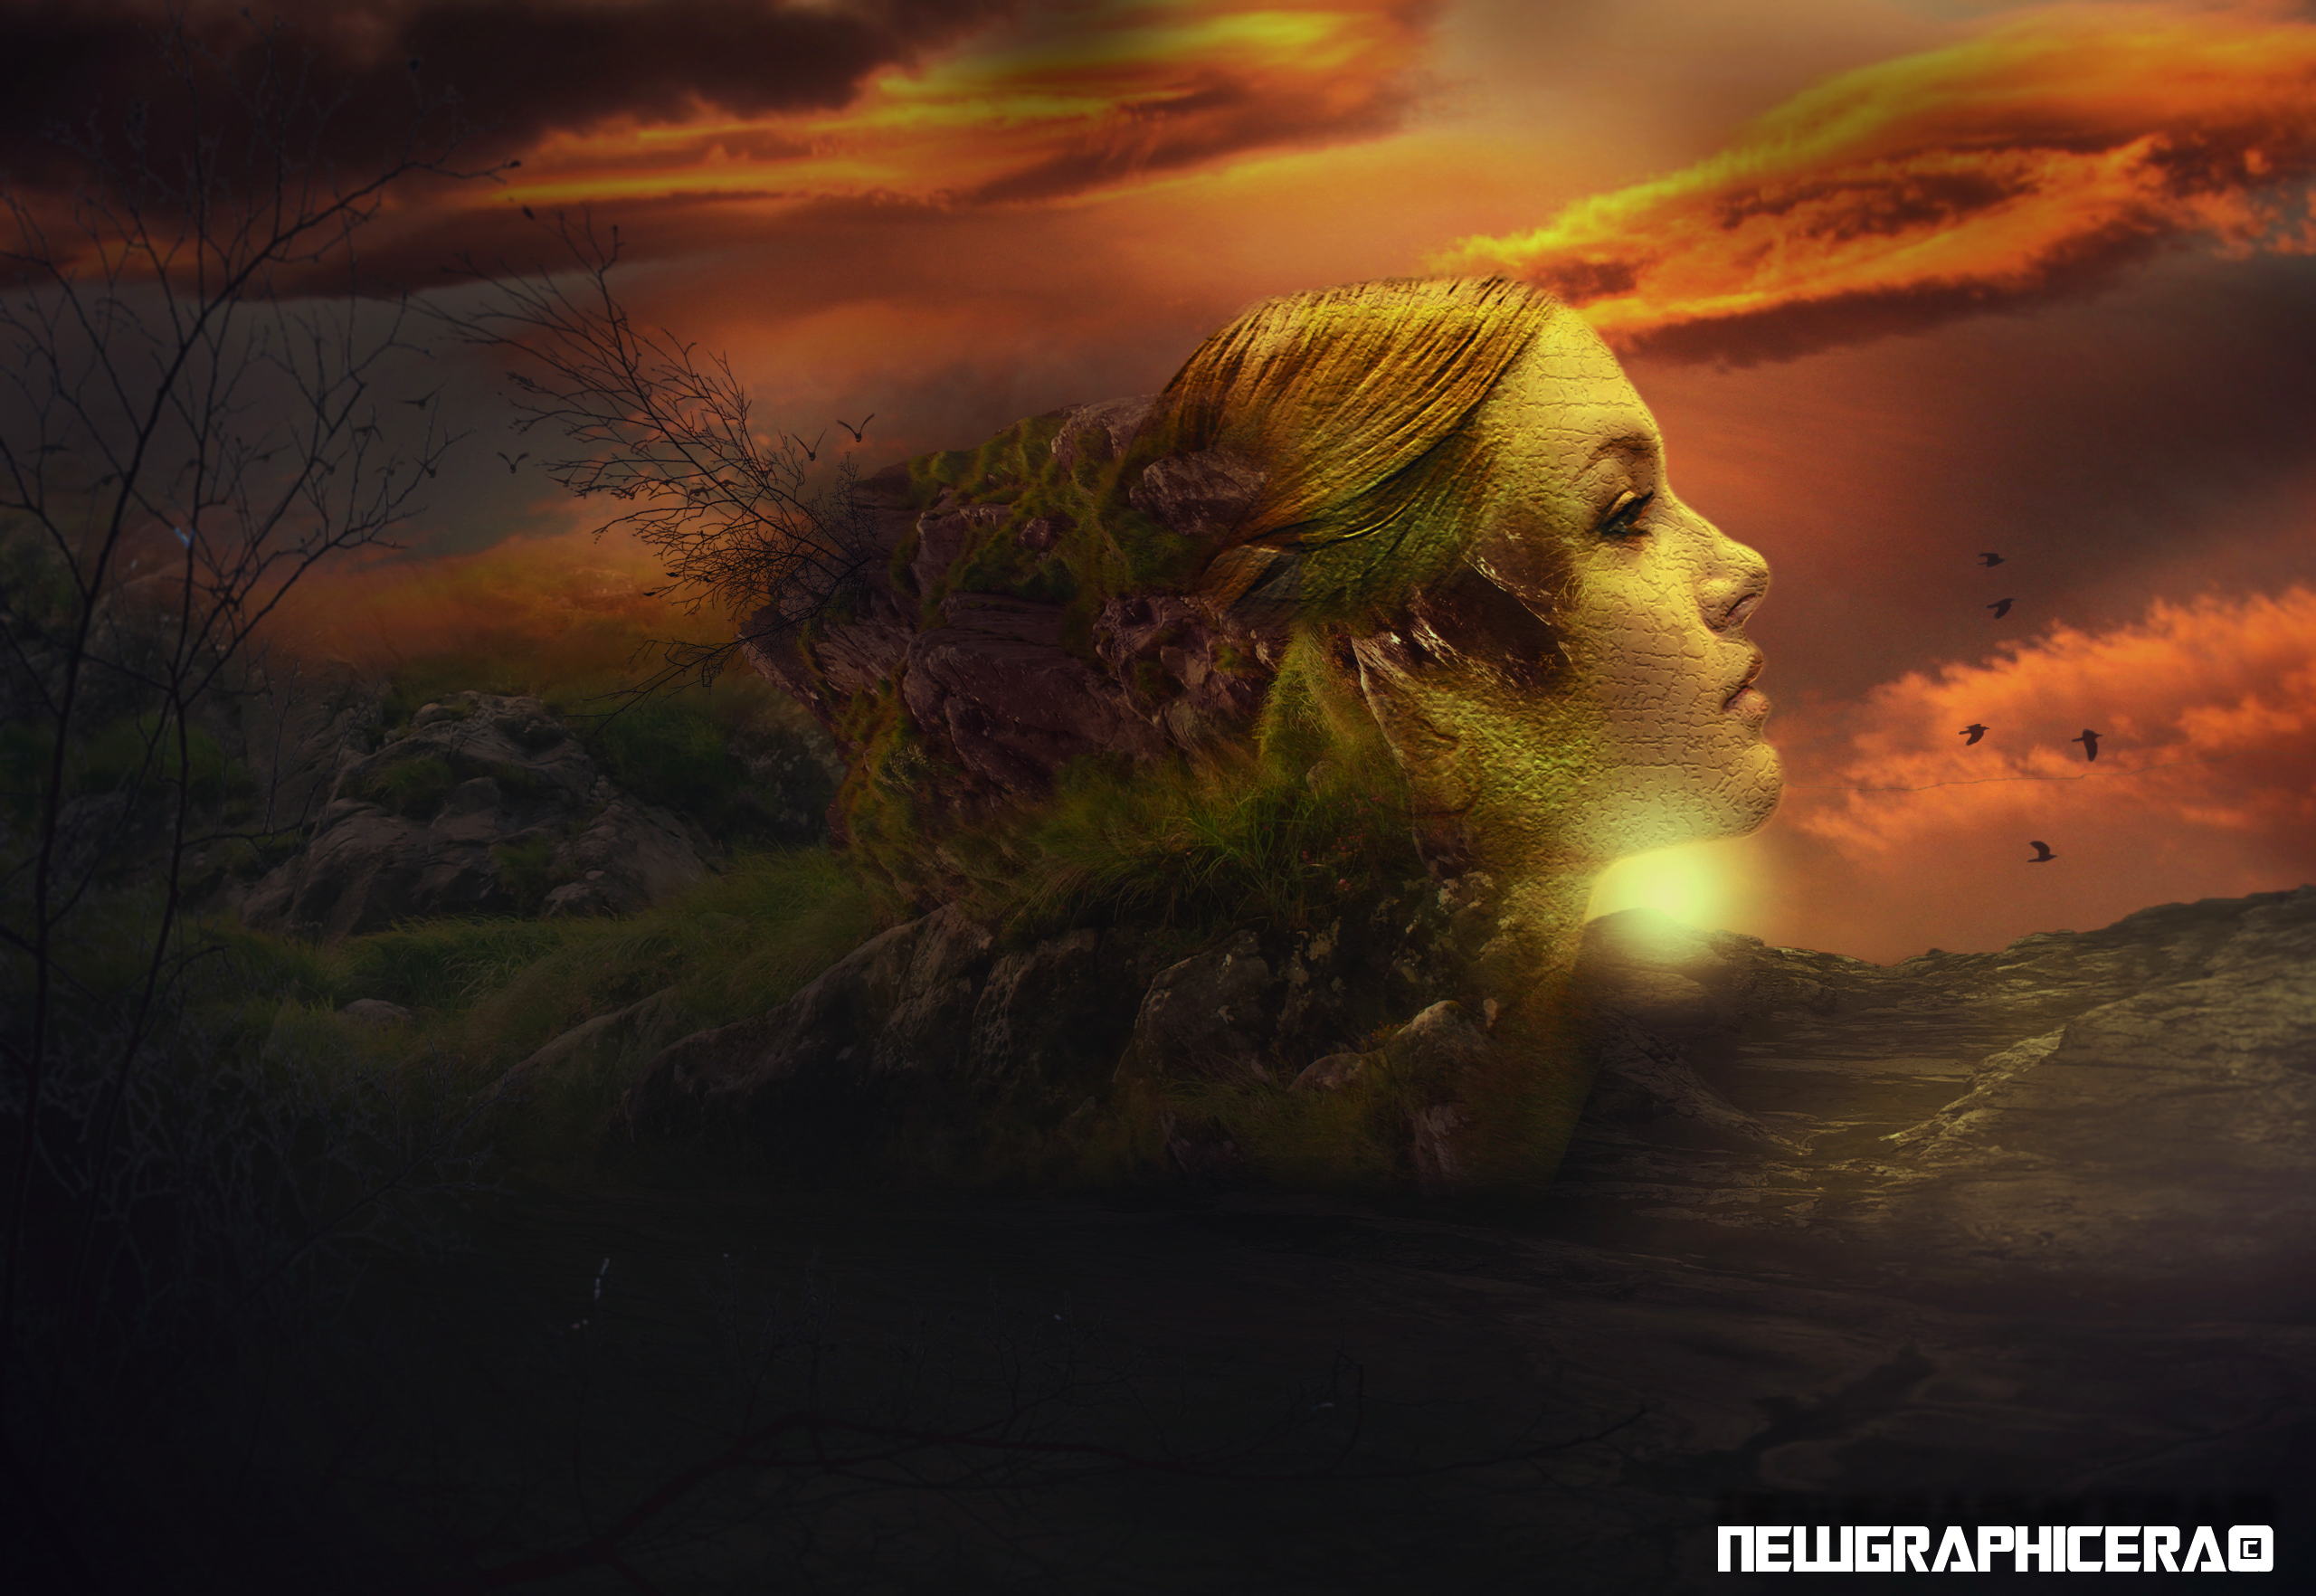 I will create any digital art manipulation photoshop work